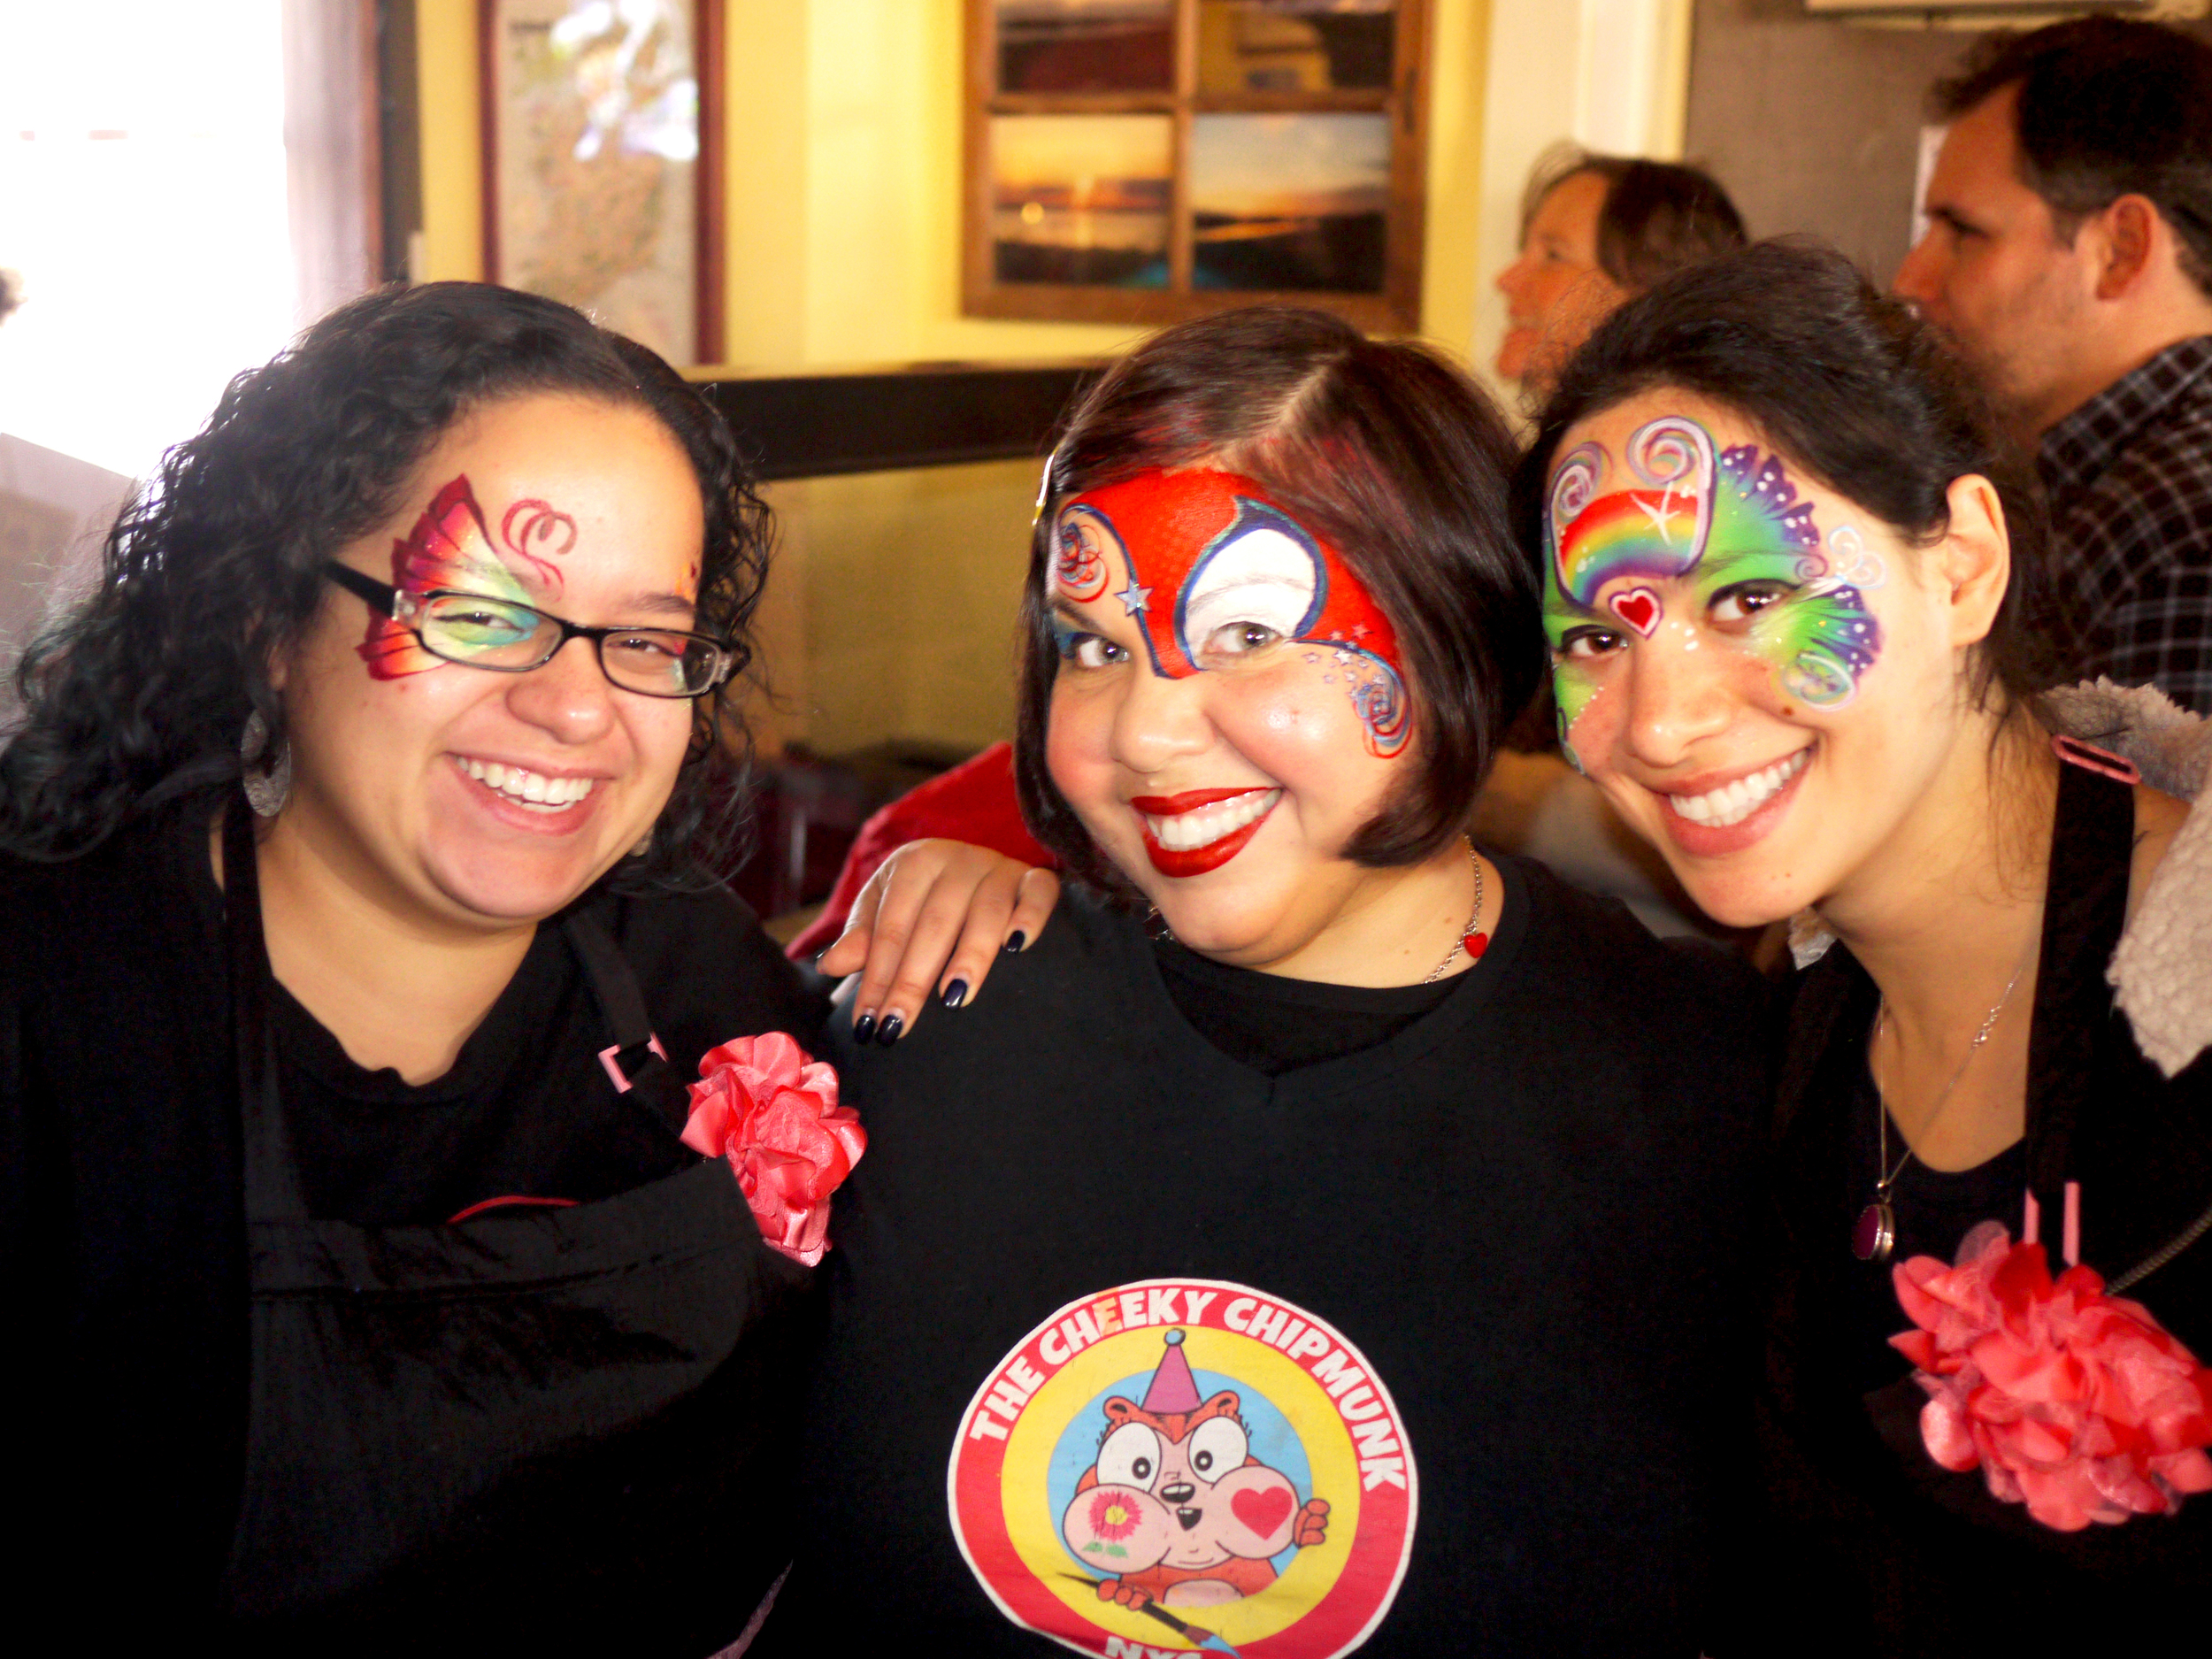 The Cheeky Chipmunk and her friends, fellow face painters Onalee Rivera and Doreen Zion came together to volunteer at a fundraiser for a very special little boy named Gabriel Naughton in December of 2014. Read more about Gabriel and his fundraiser via  this article published by The Queens Courier . WE LOVE YOU GABRIEL!